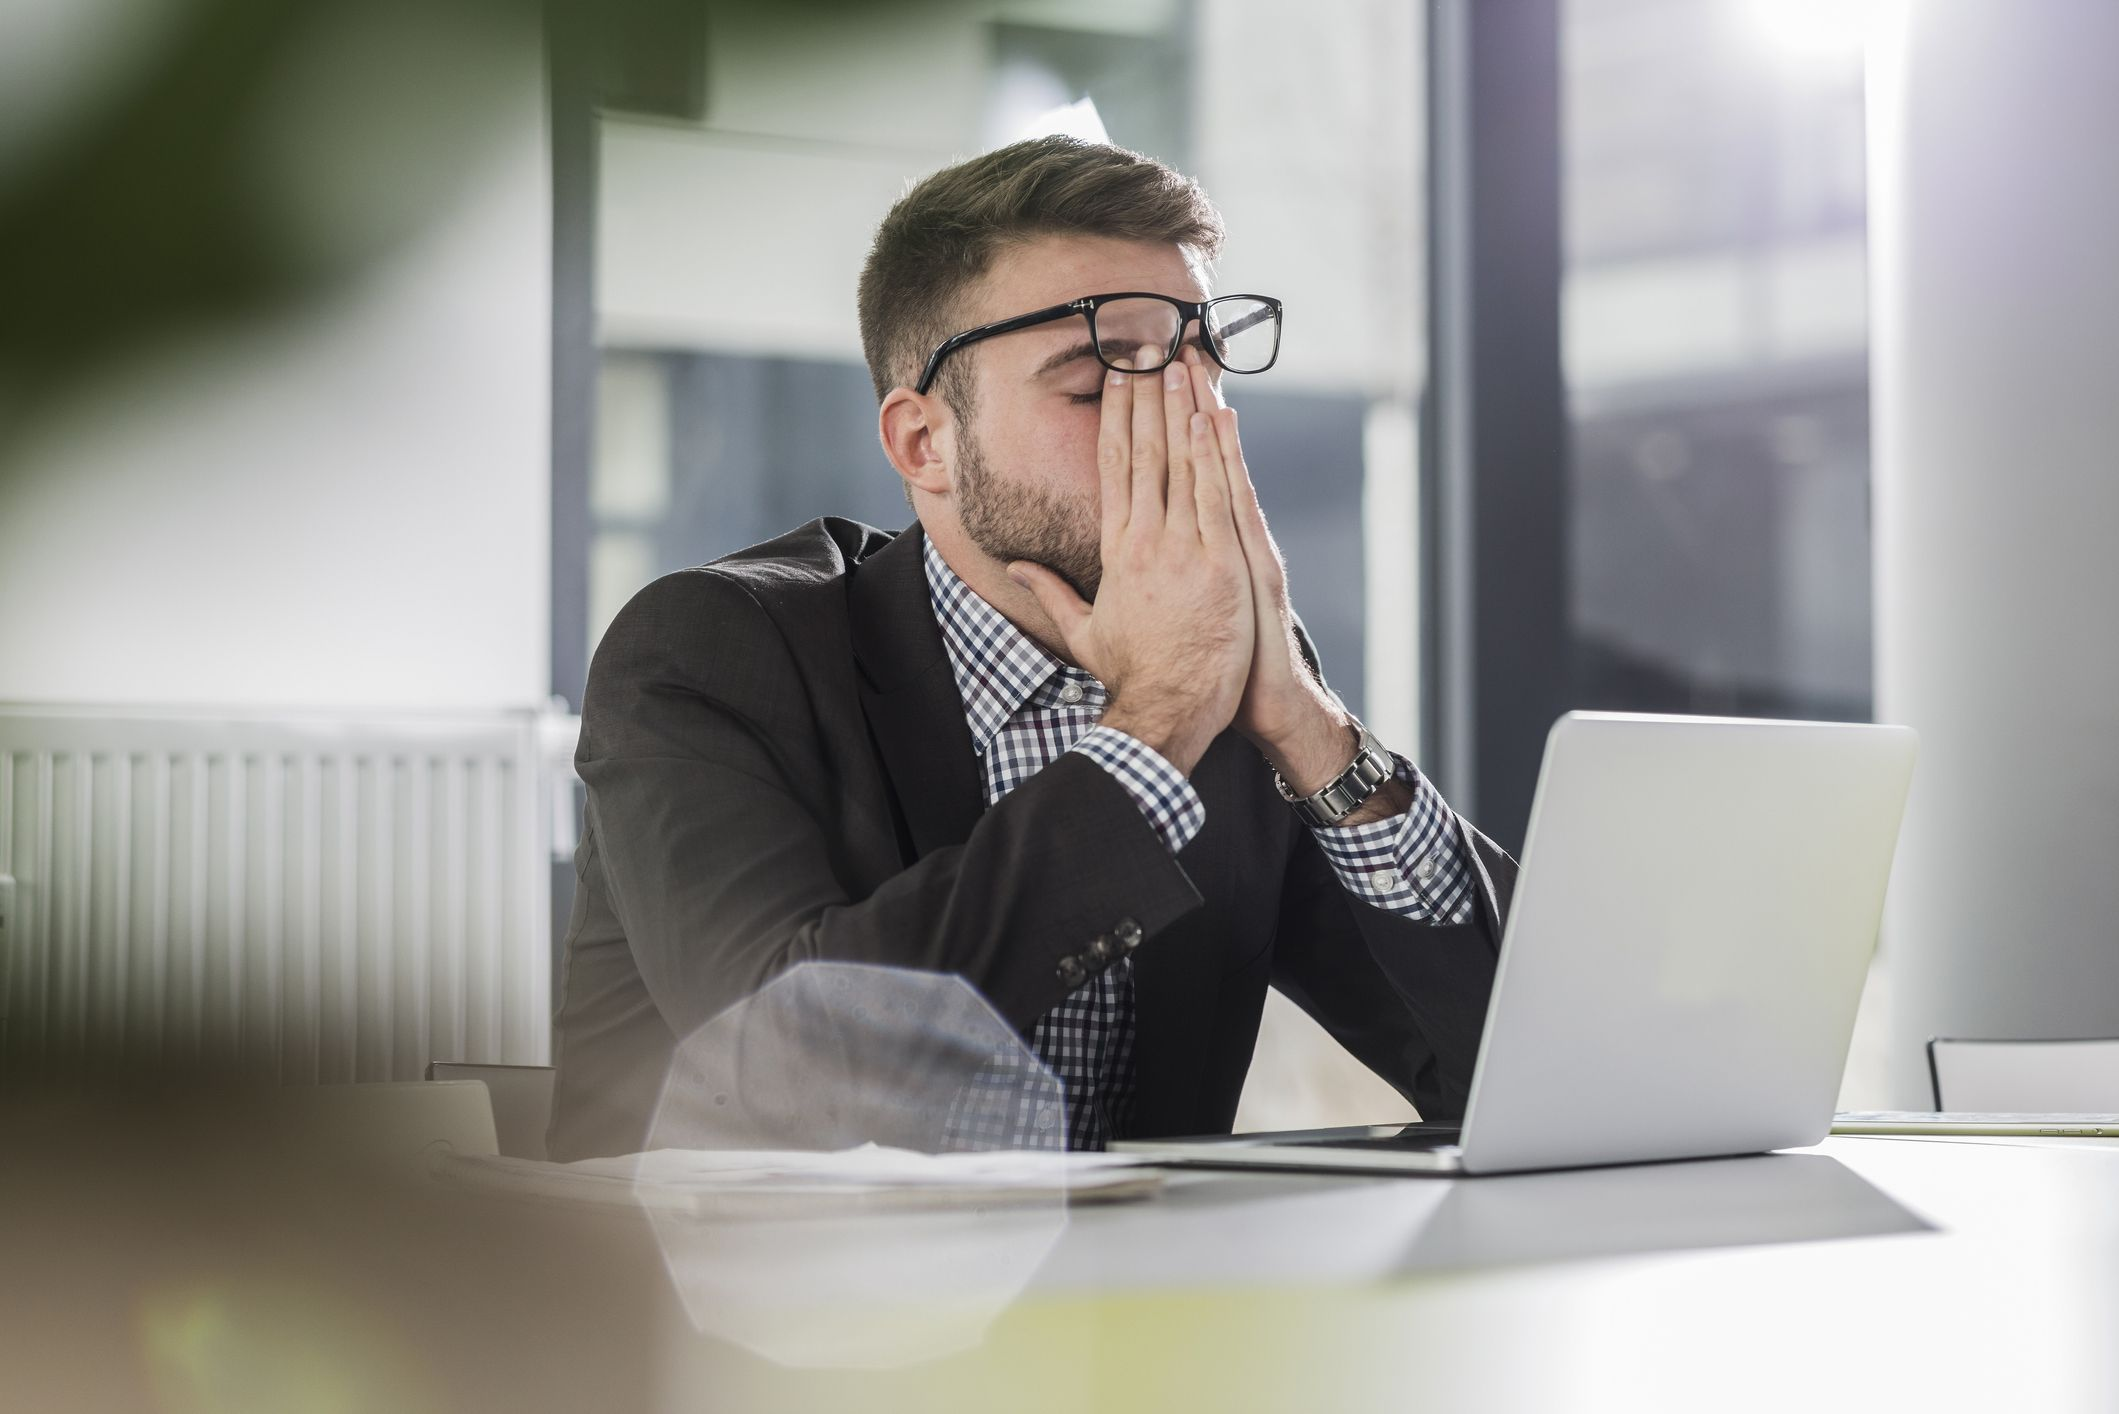 WHO recognizes workplace 'burnout' as an occupational phenomenon